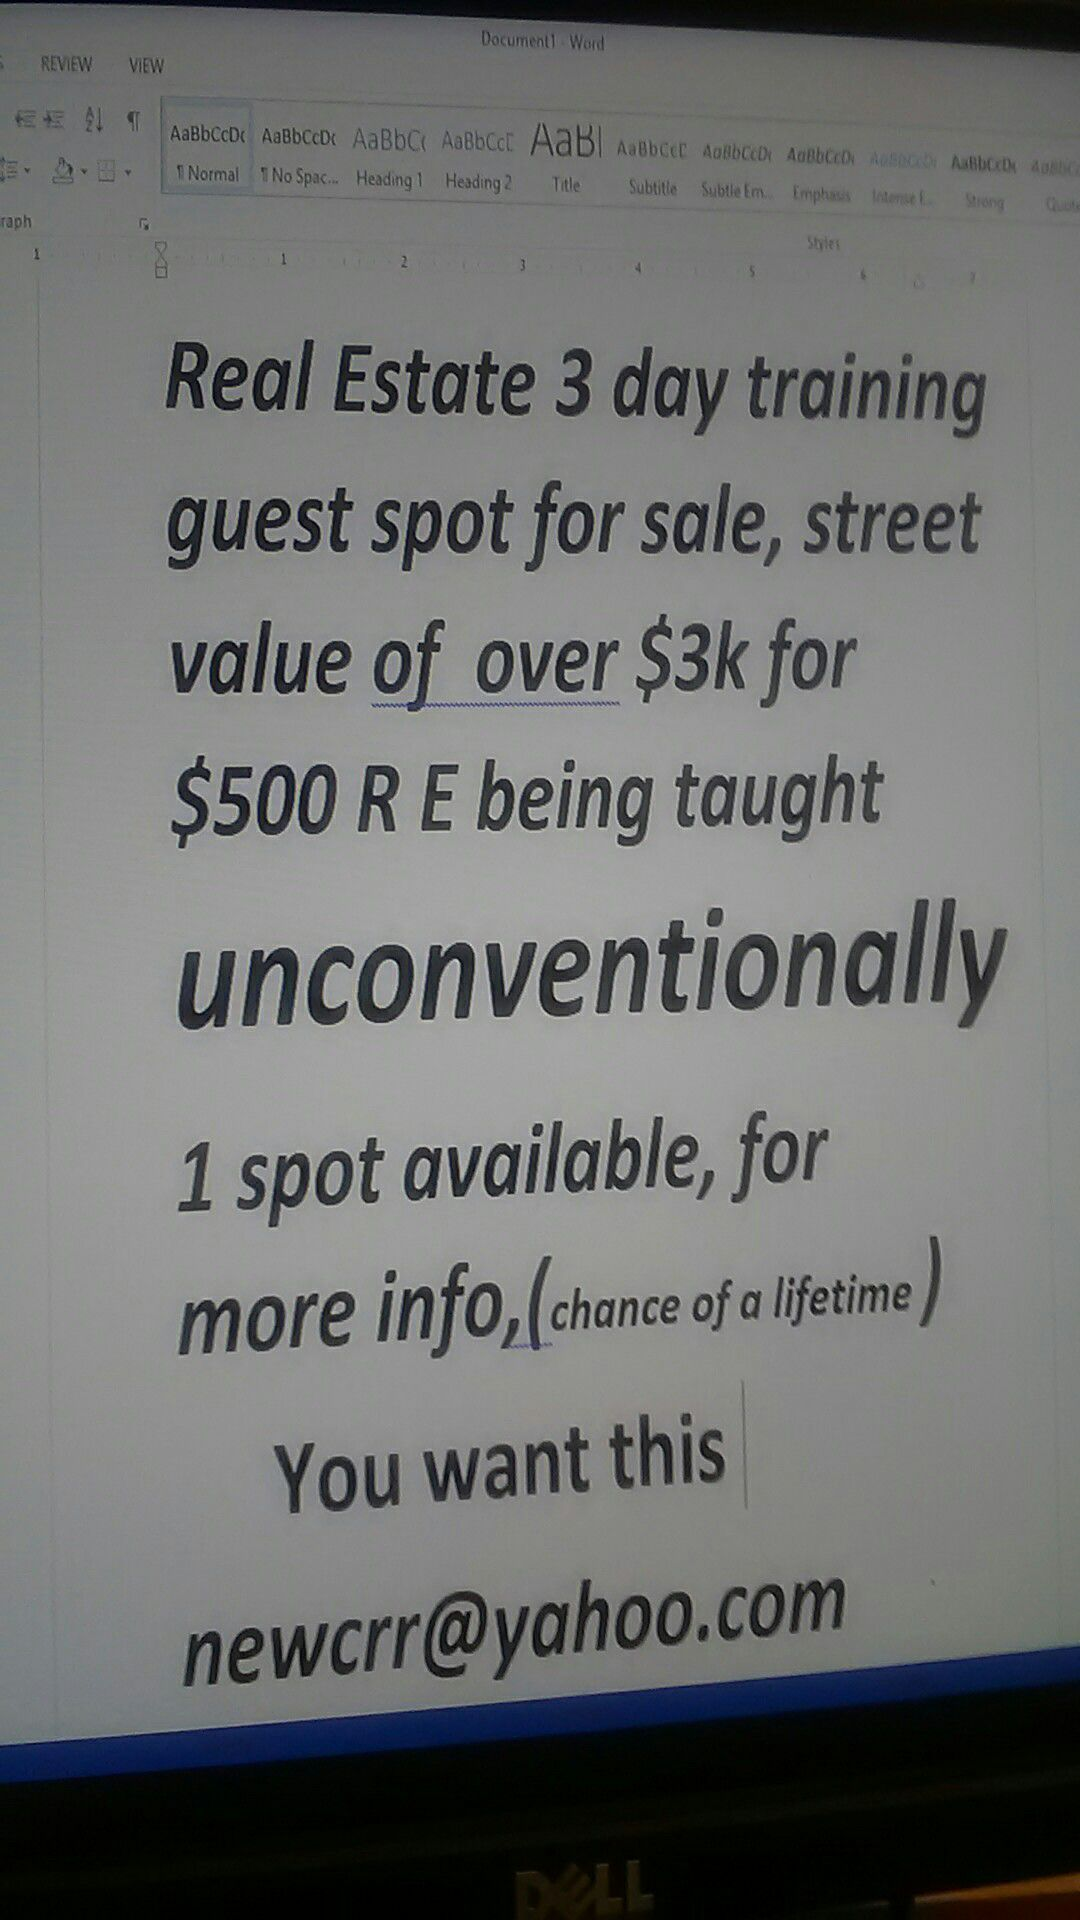 Real Estate 3 day training R E taught unconventionally, u will never see this offer again. Perfect for the beginner